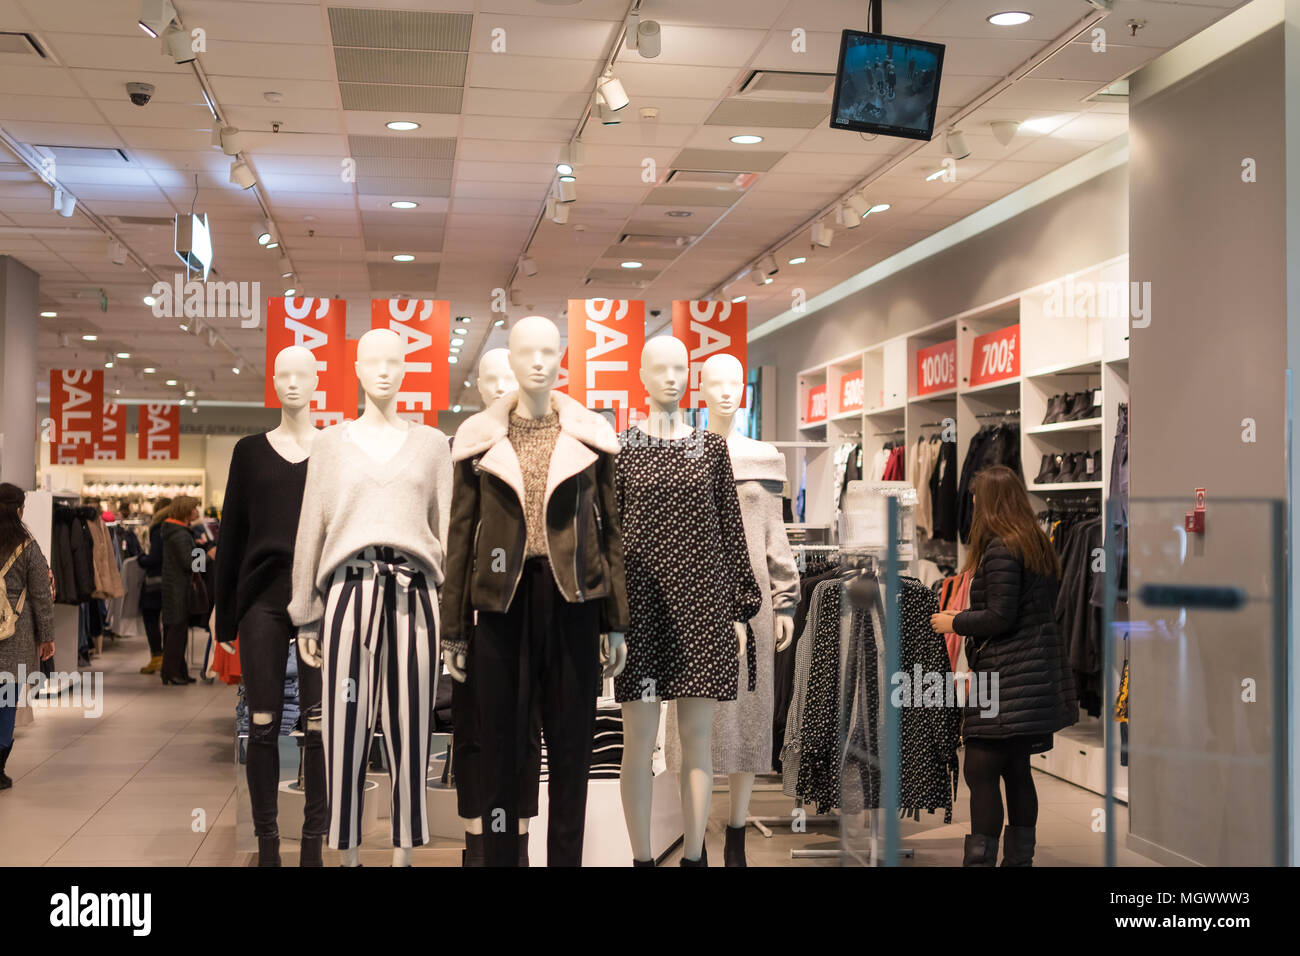 Mjr sales clothing store